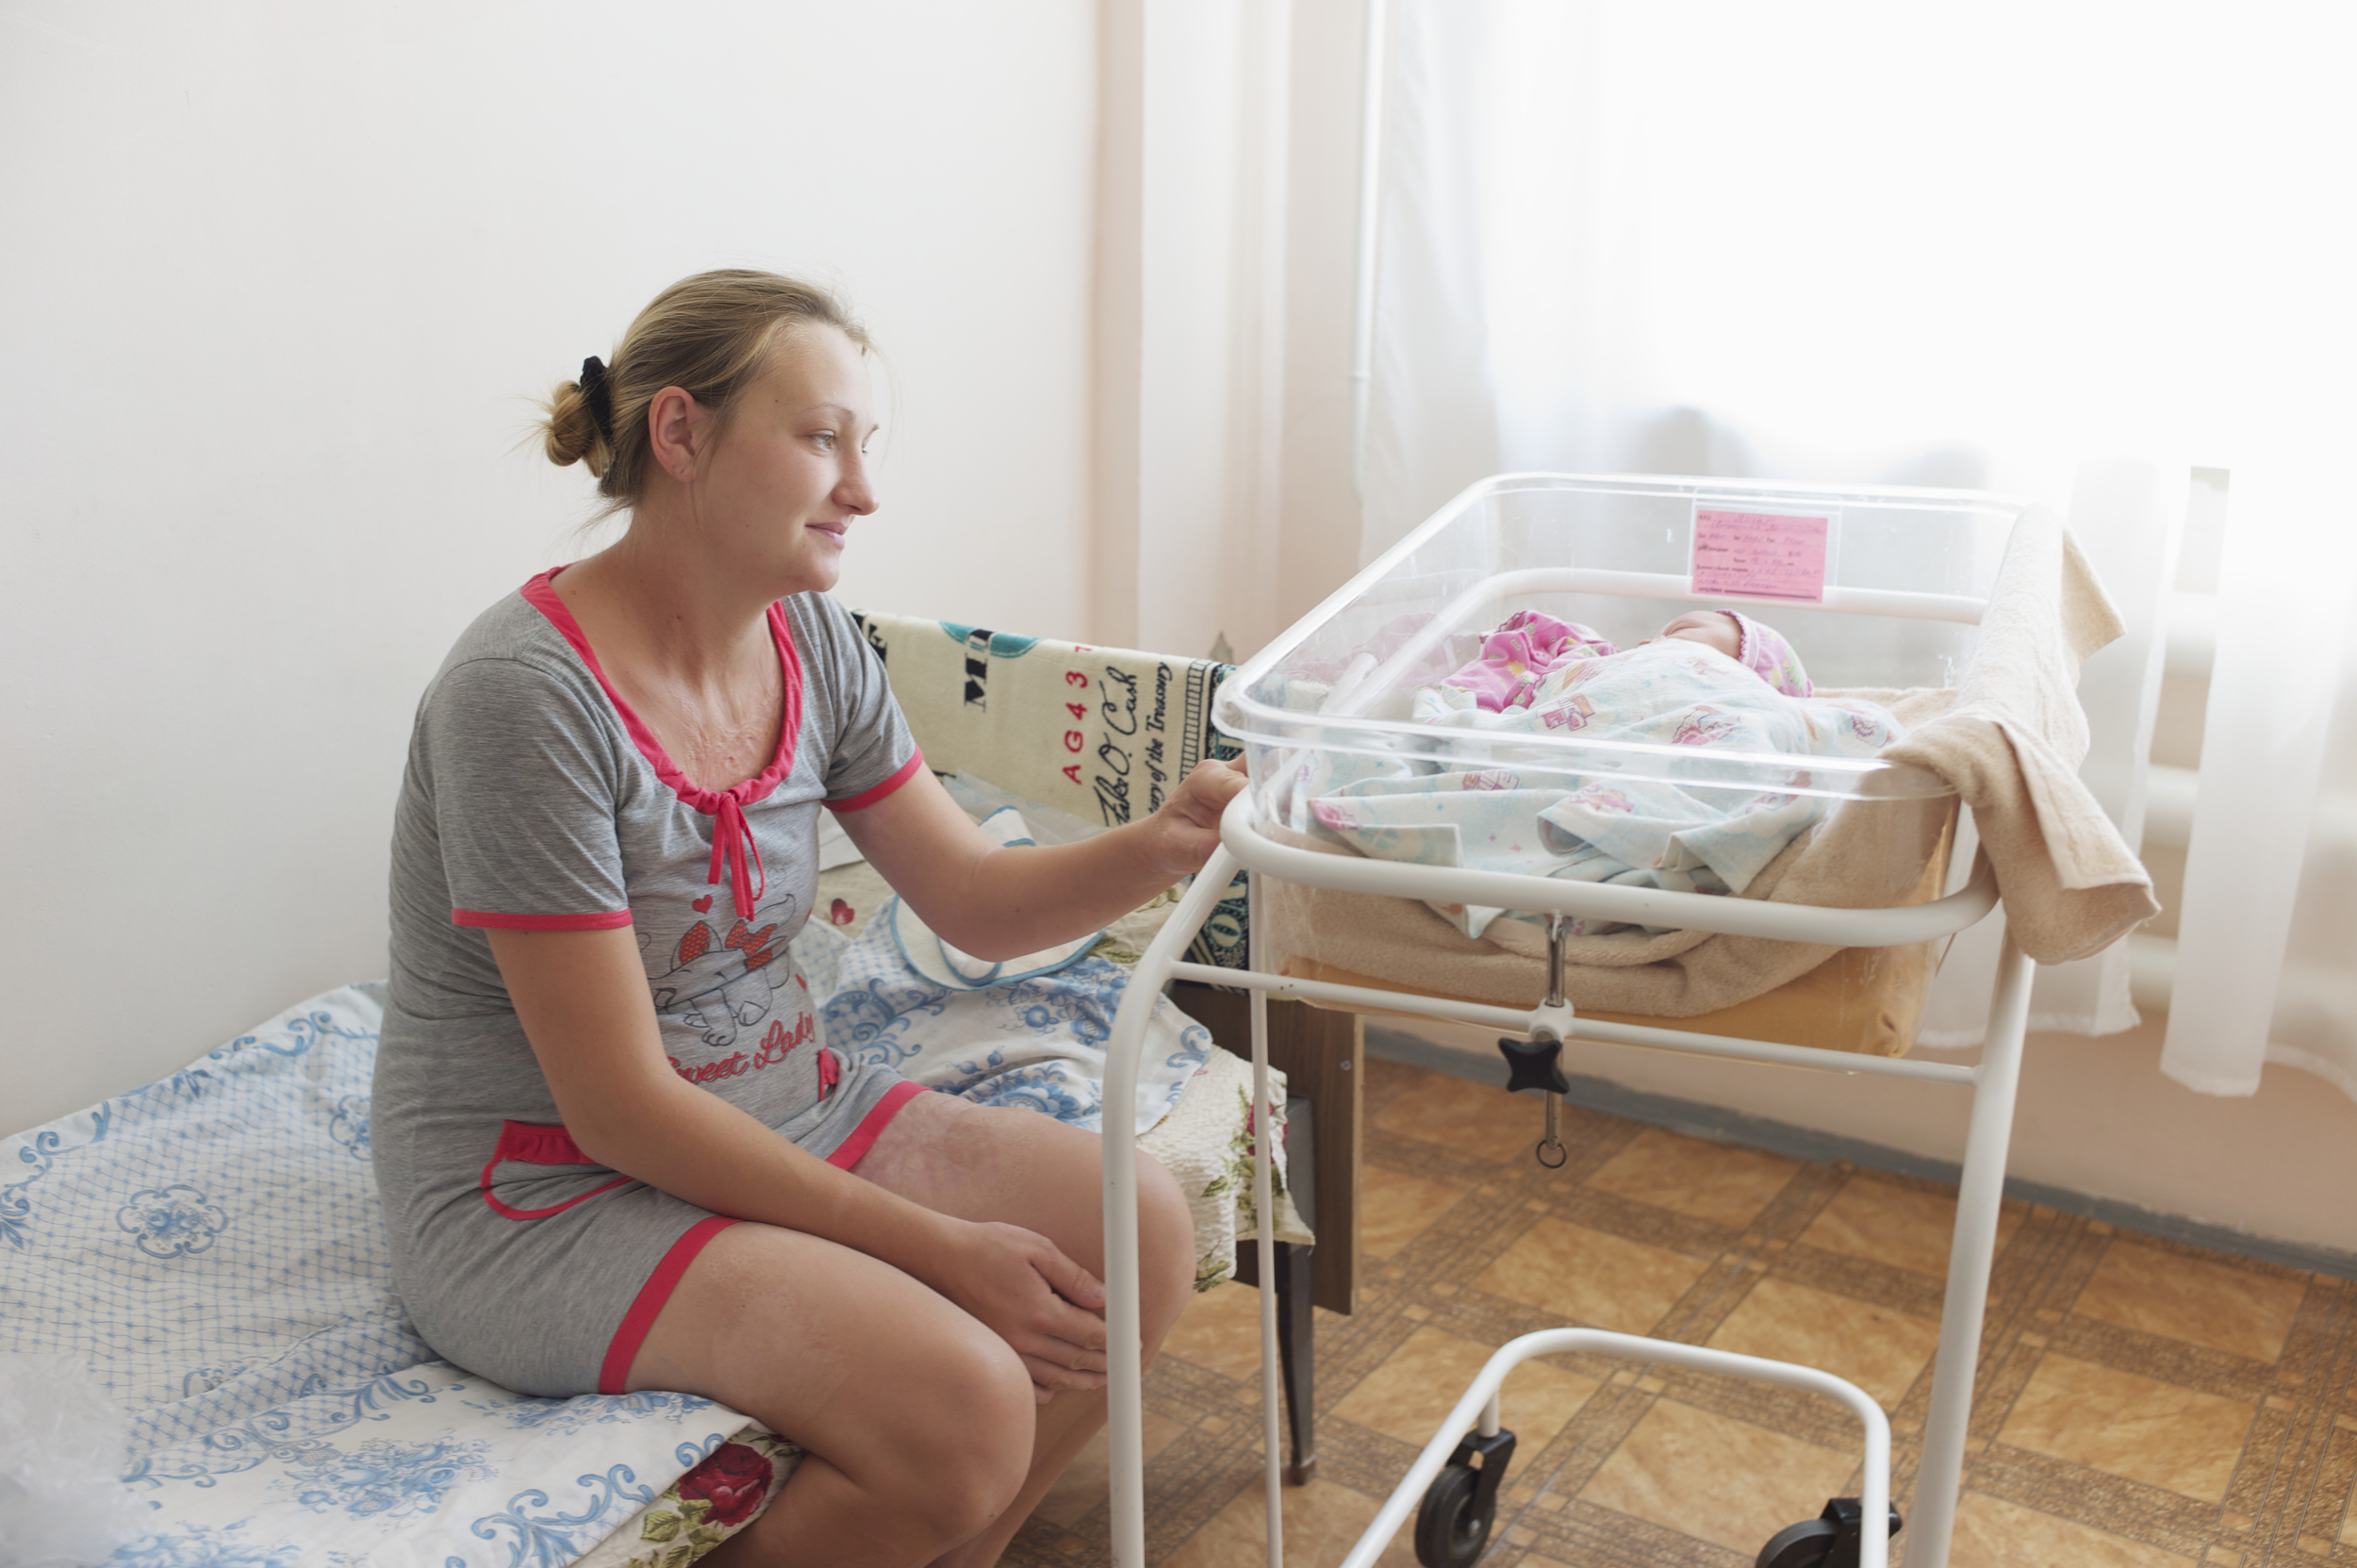 This young woman in Sveredovonesk moved from the NGCA so that she could give birth where her child would be registered by legitimate Ukrainian authorities. Photo: Patrick Breslin